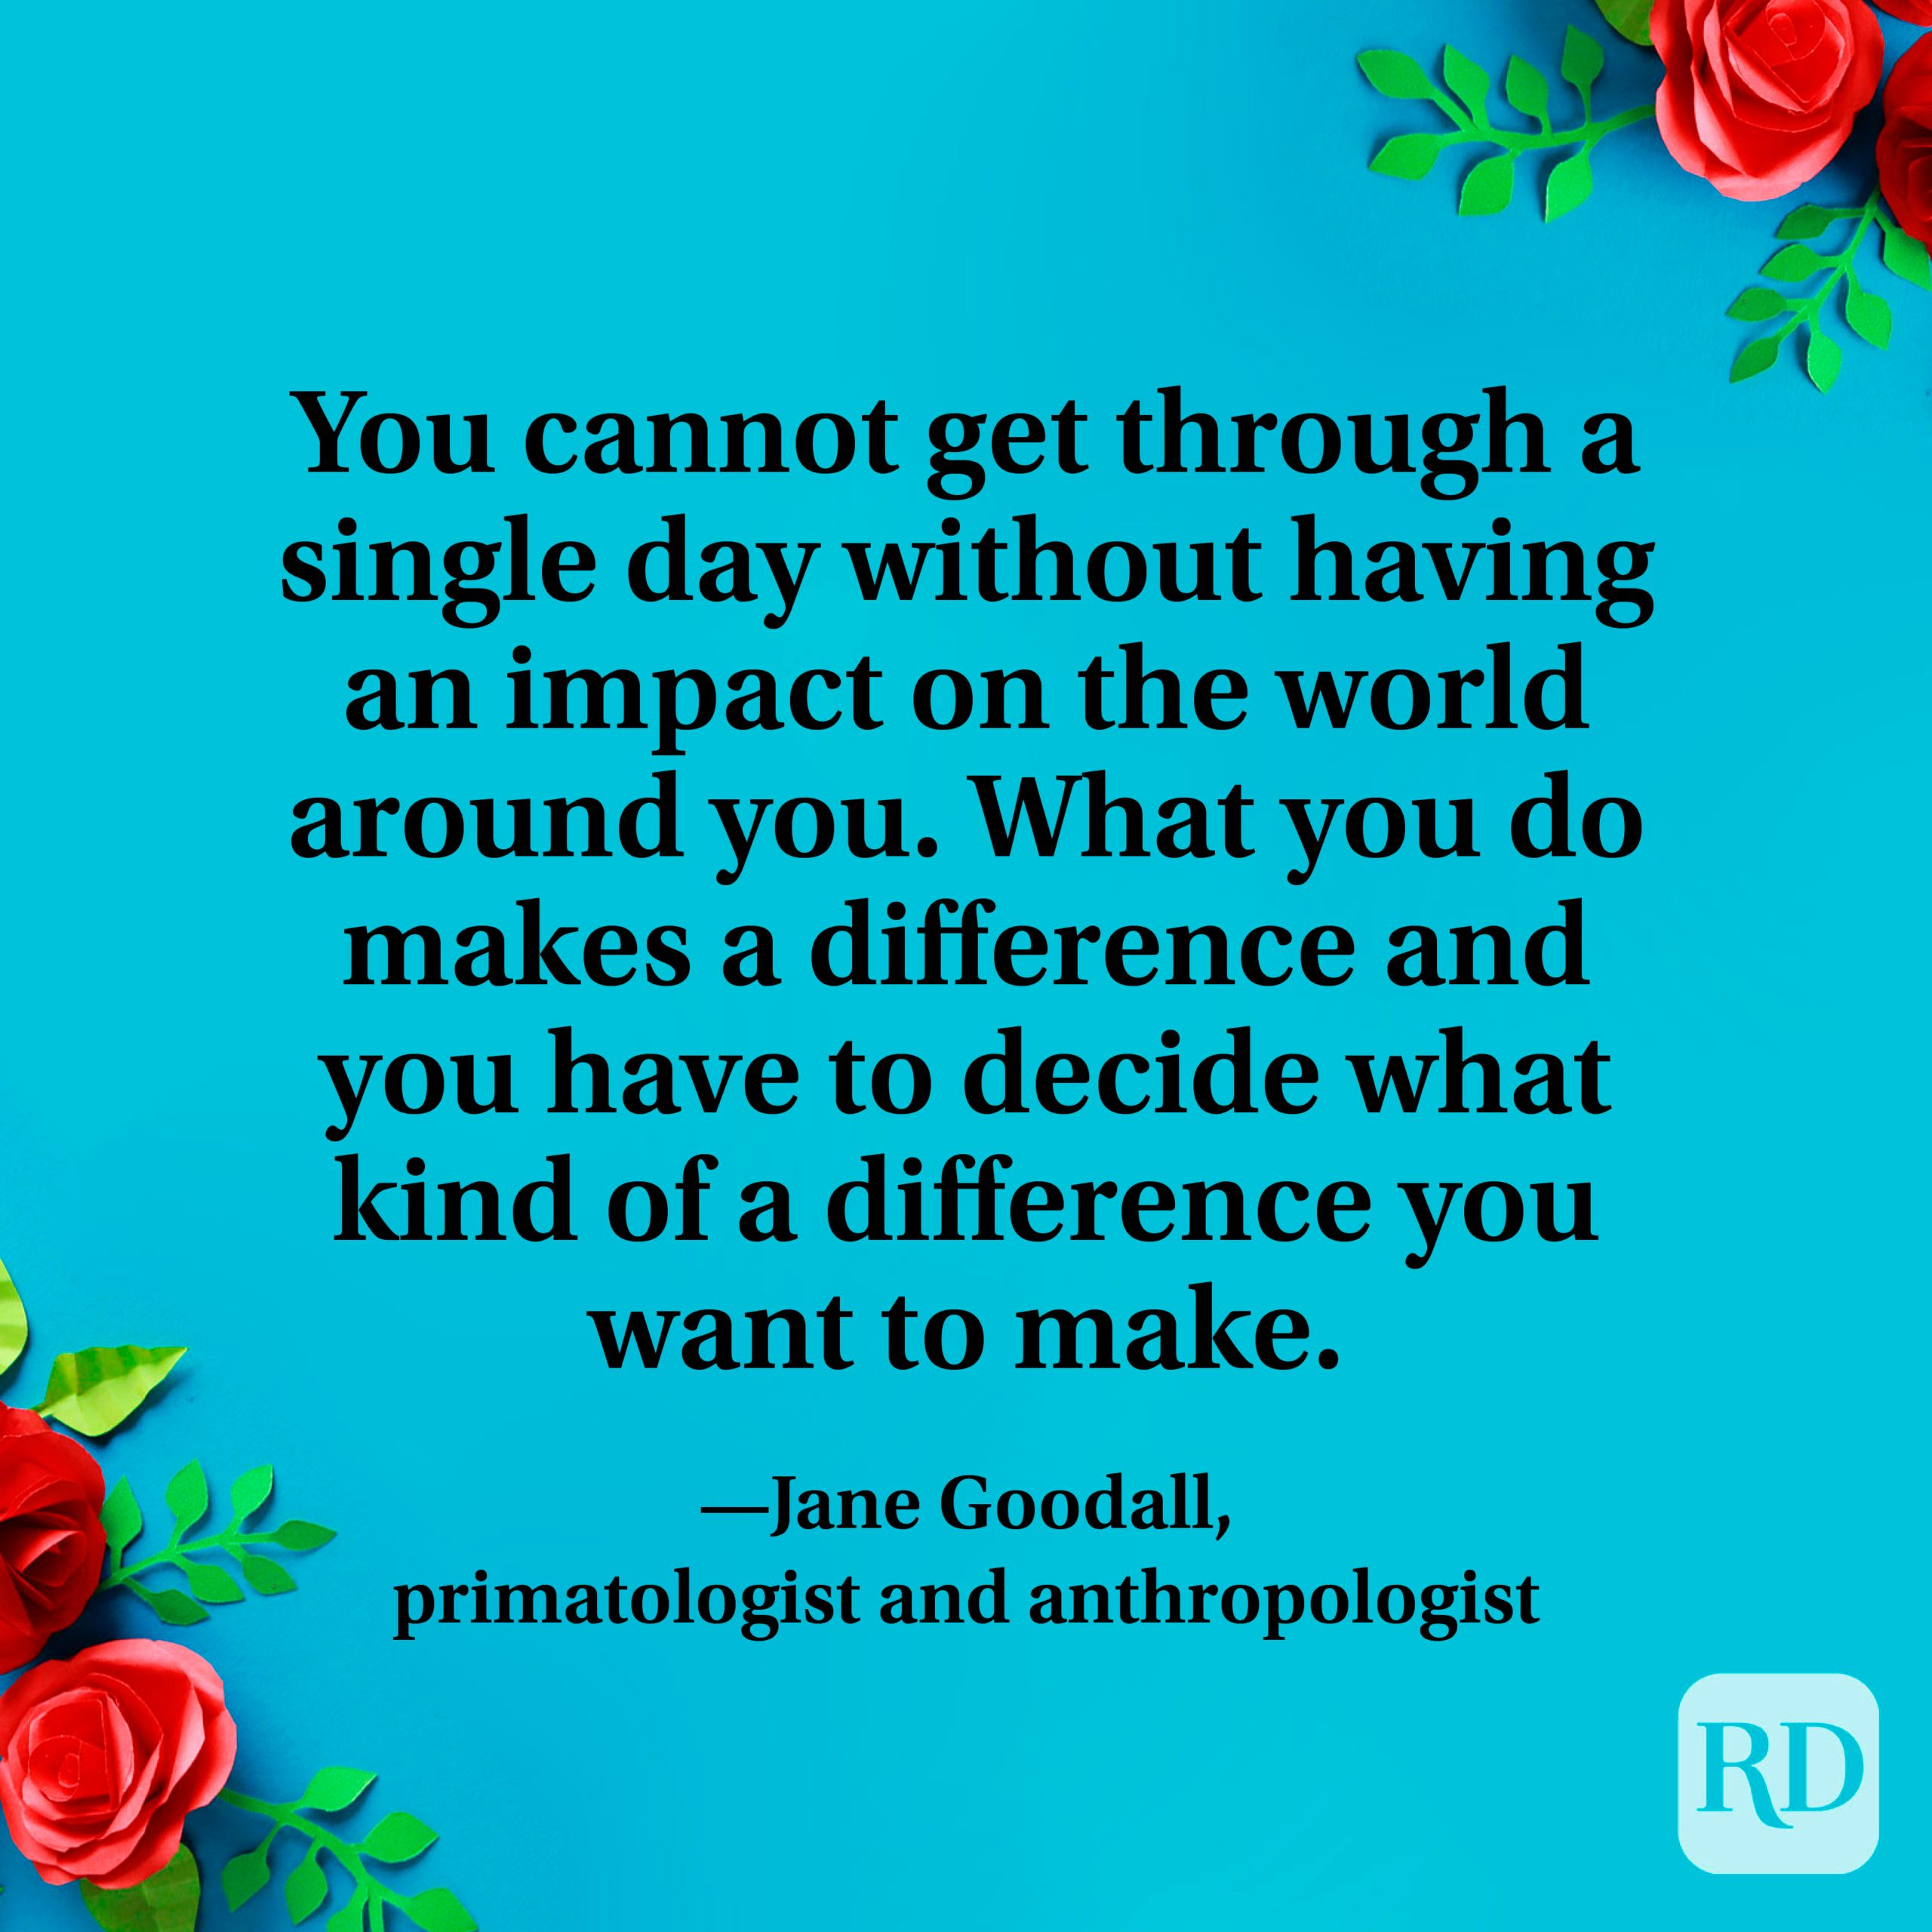 """""""You cannot get through a single day without having an impact on the world around you. What you do makes a difference and you have to decide what kind of a difference you want to make."""" —Jane Goodall, primatologist and anthropologist."""